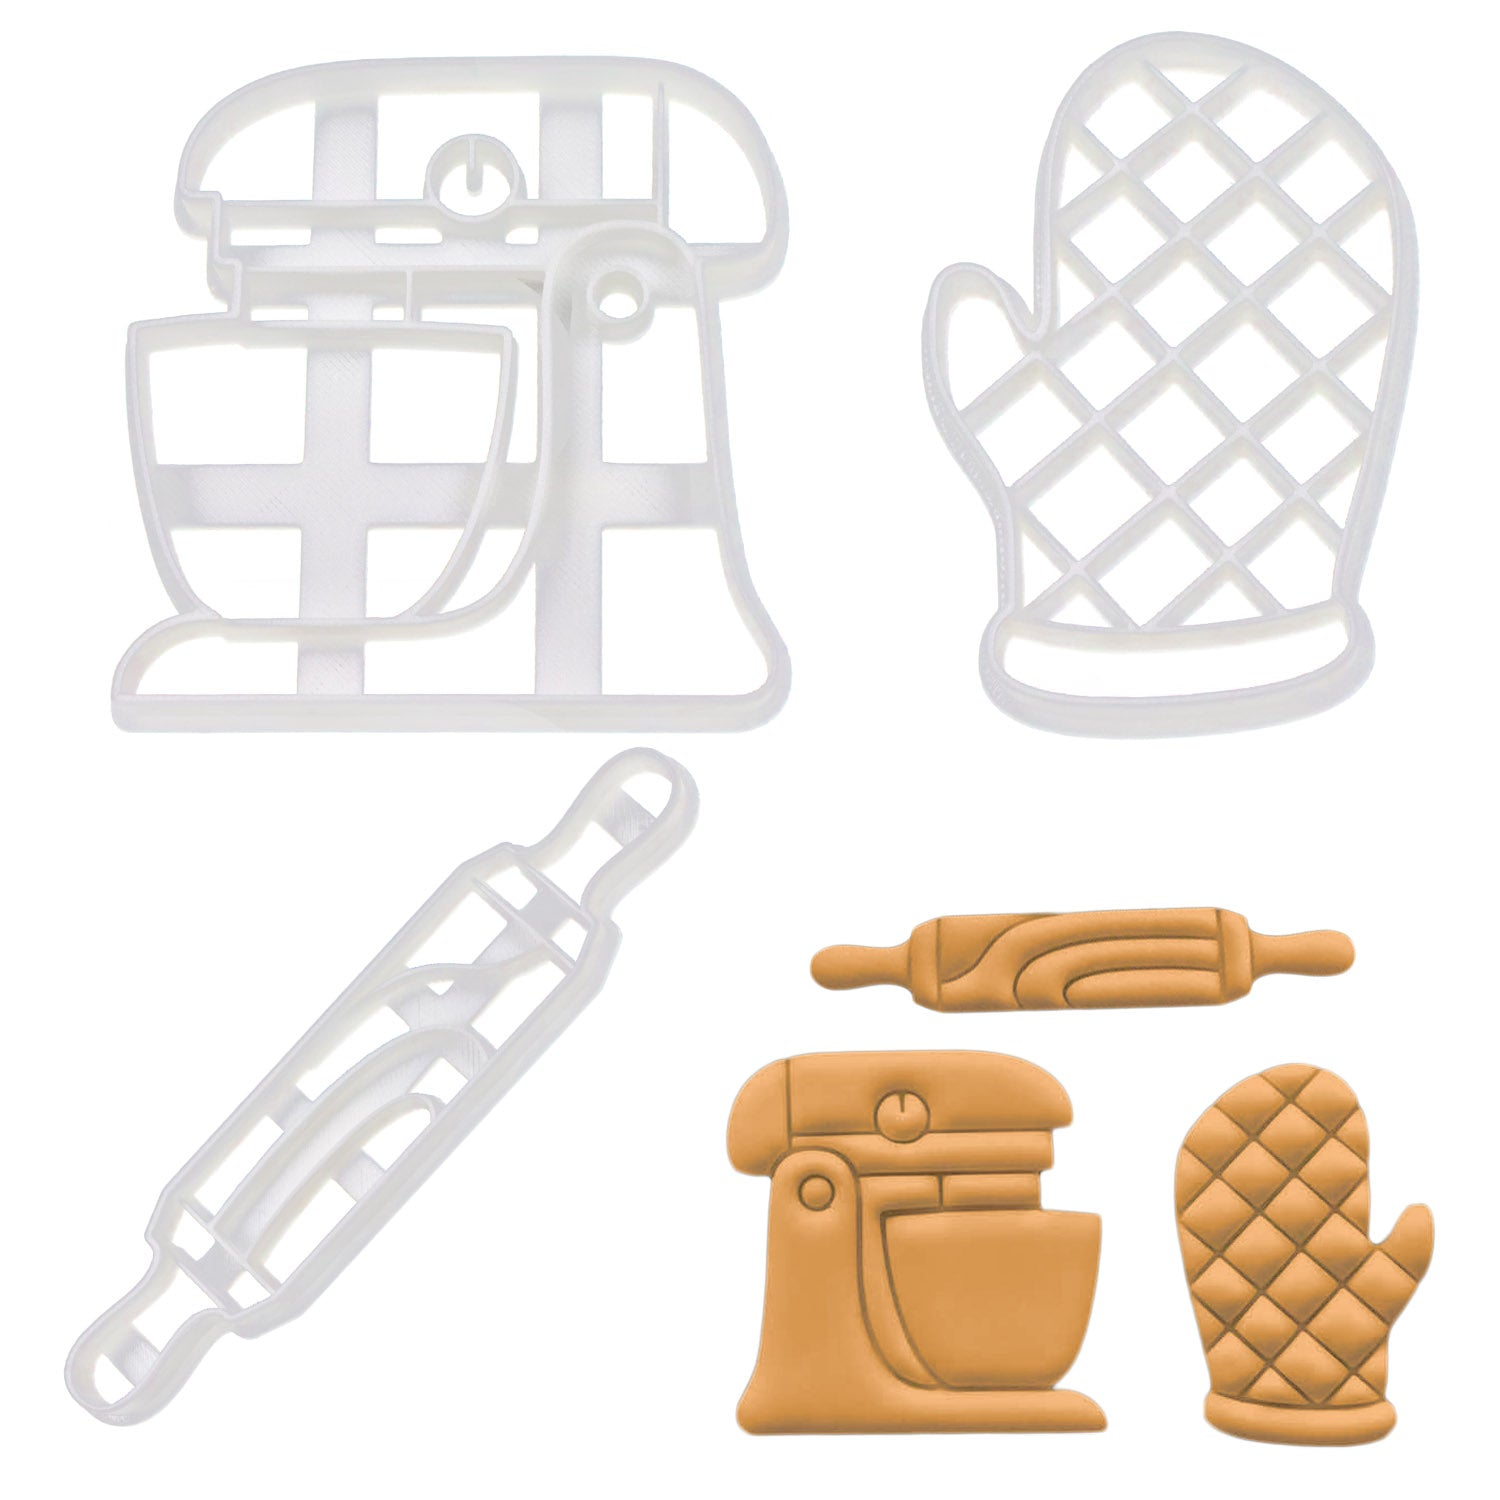 Set of 3 Baking themed Cookie Cutters: Rolling Pin, Oven Glove, & Stand Mixer